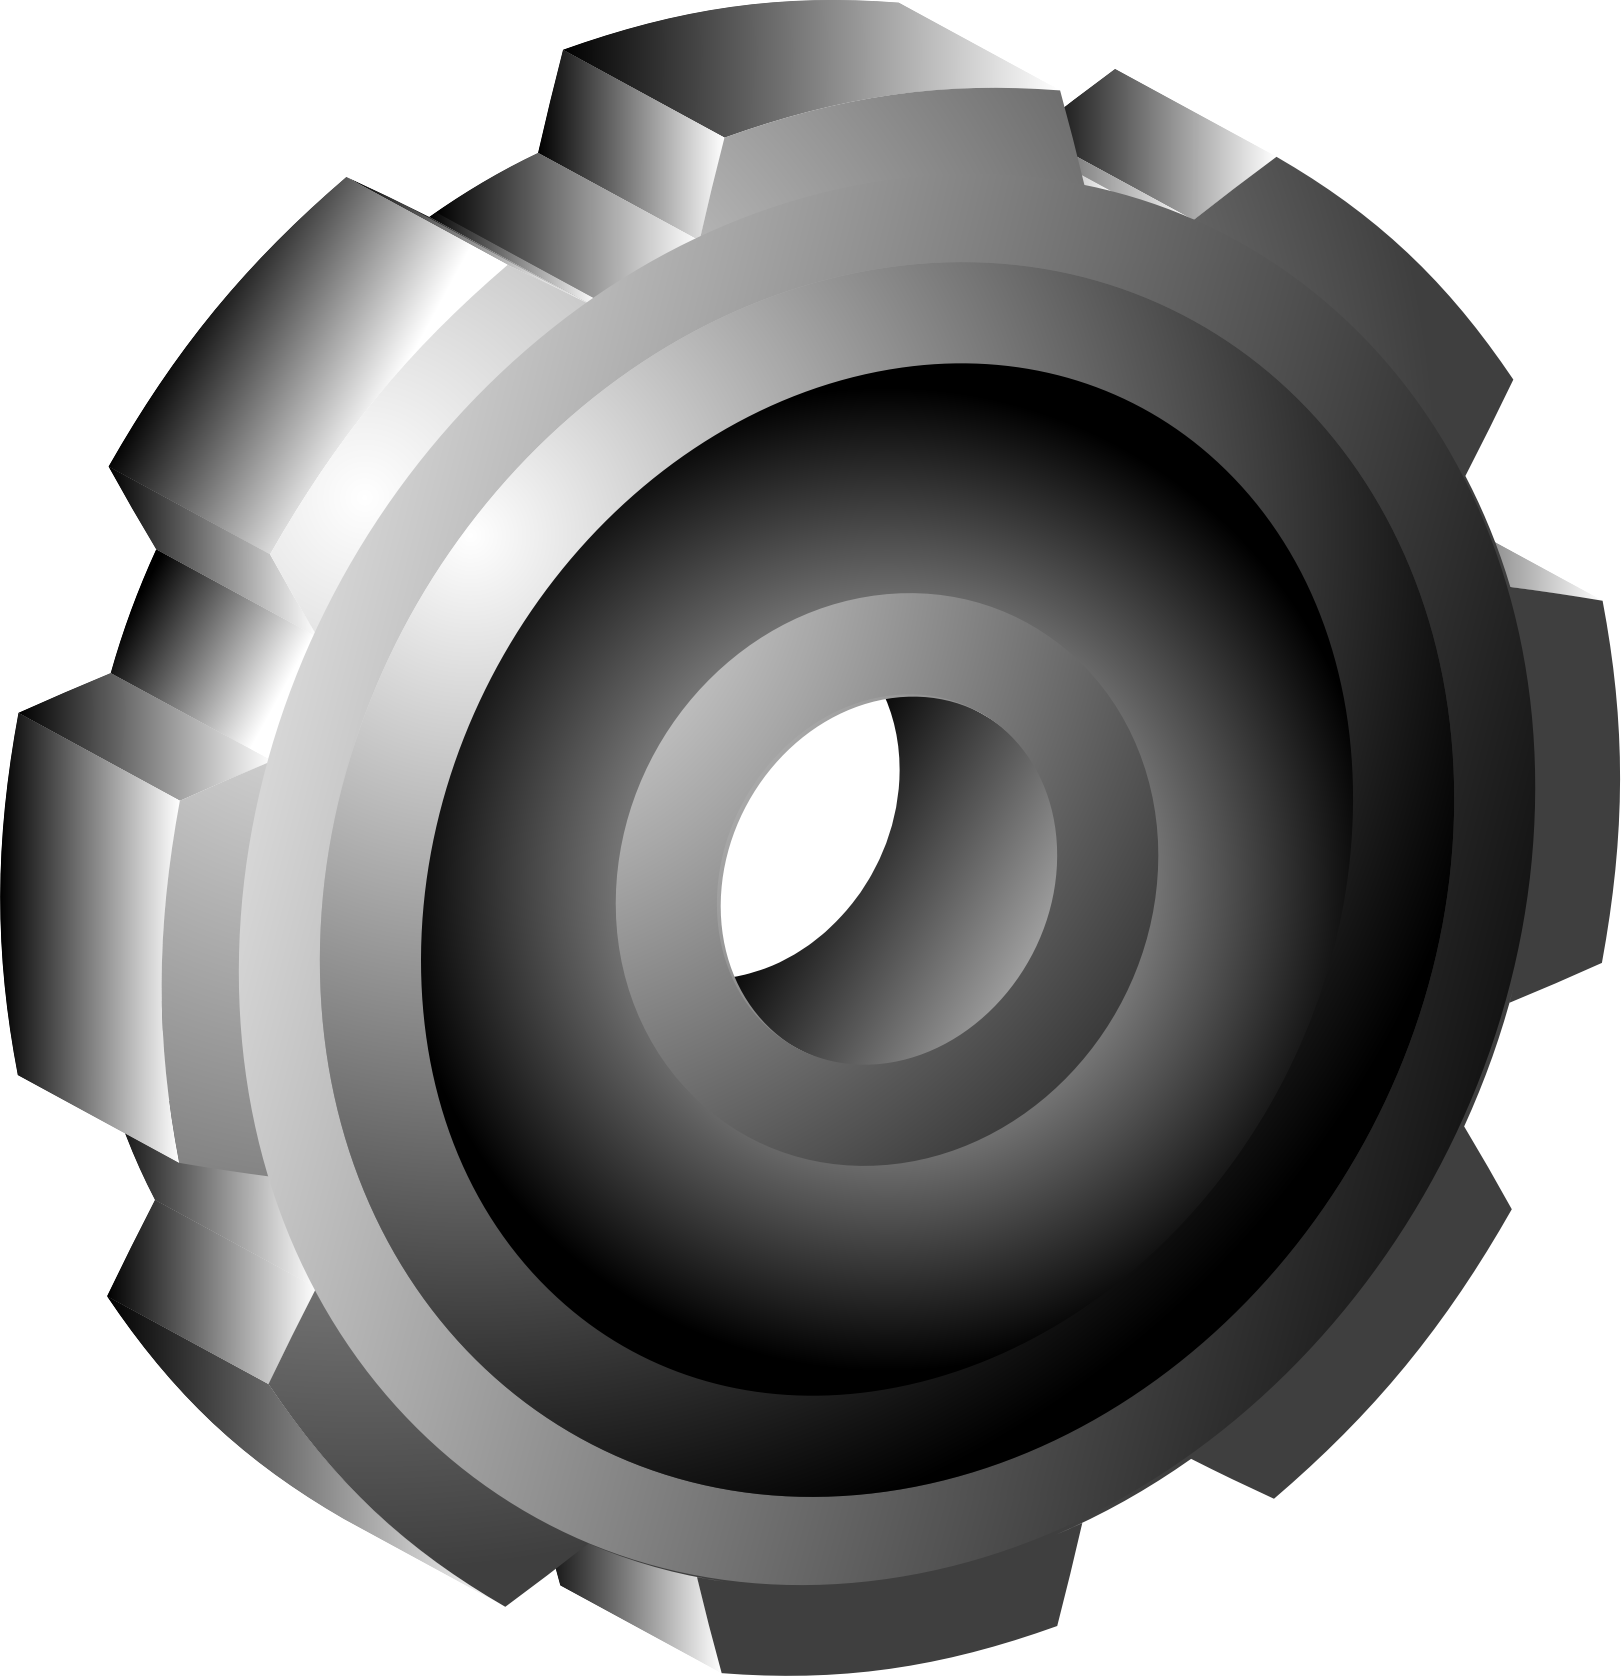 Raseone big image png. Gear clipart automotive tool